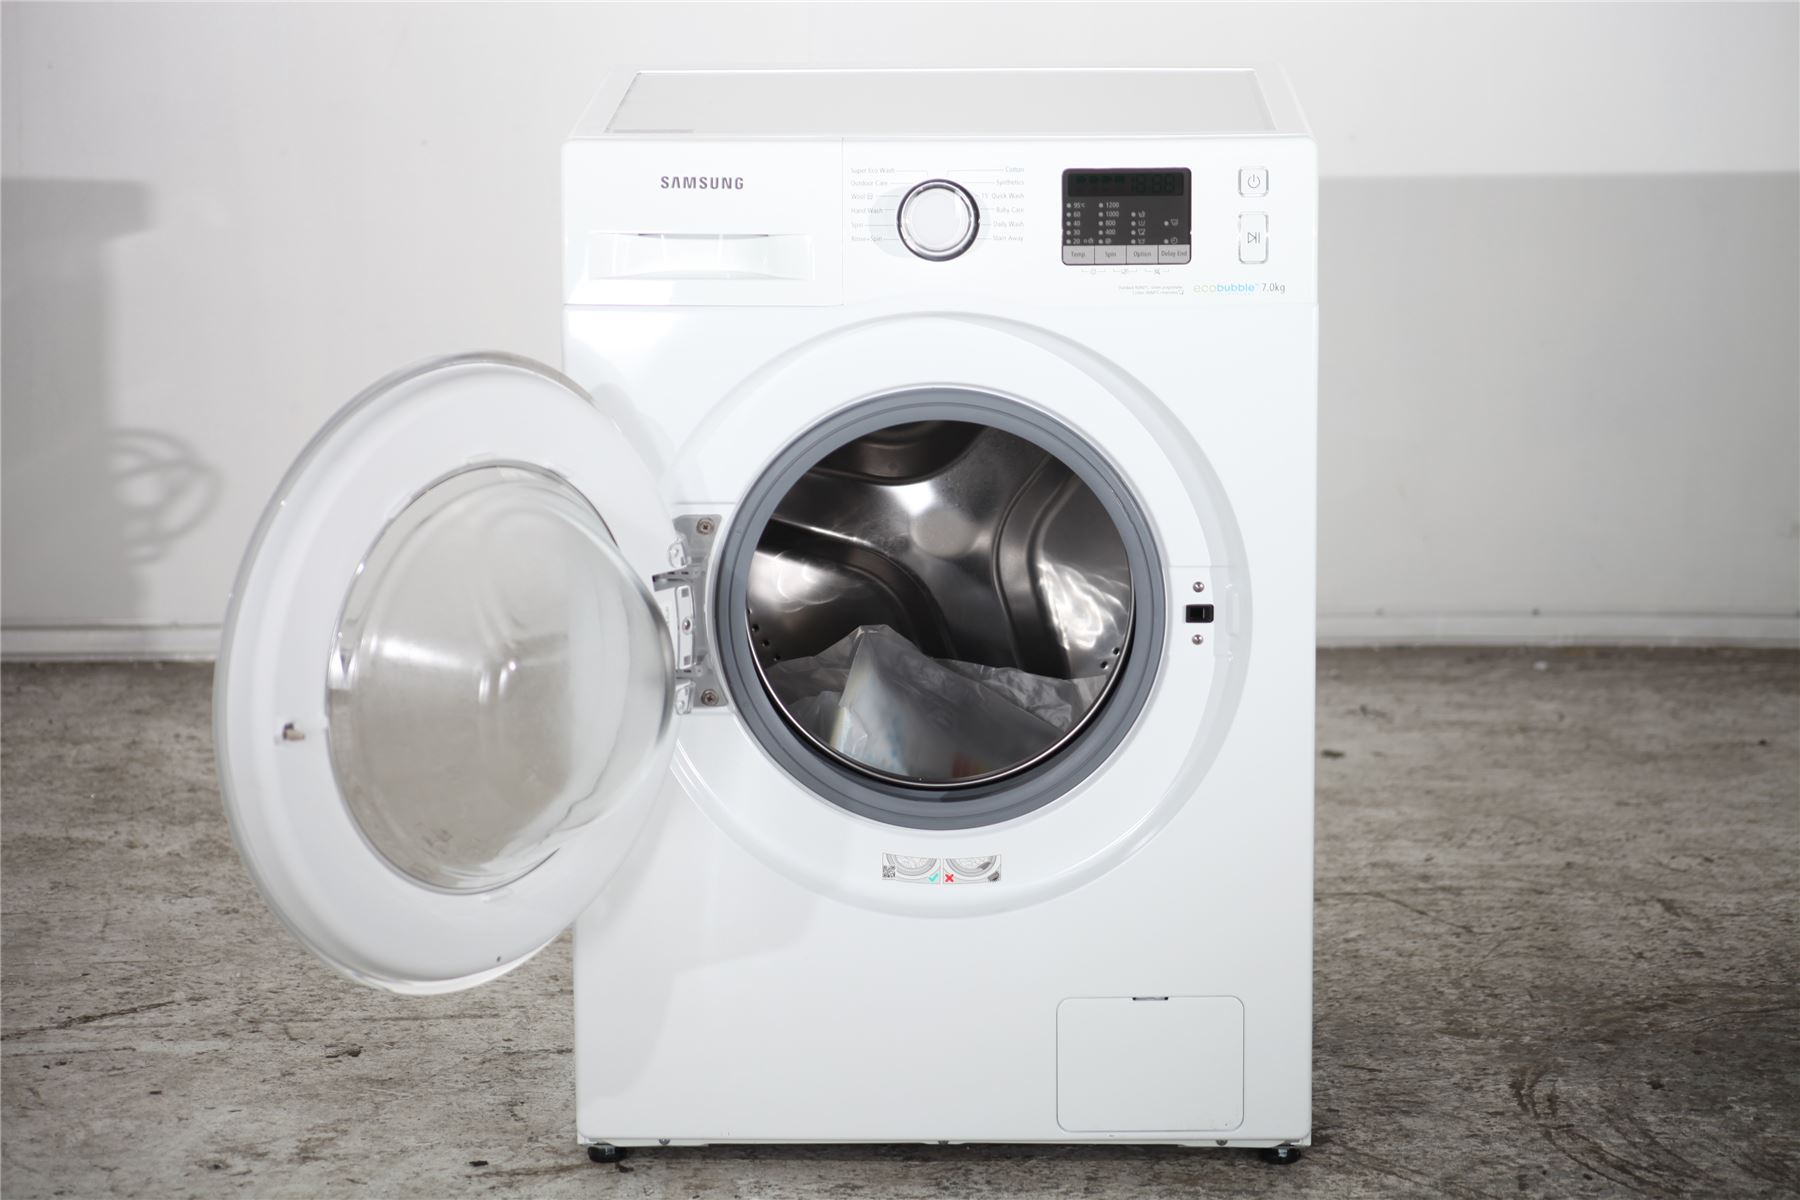 preloved samsung 7kg washing machine eco bubble wf70f5e2w2w white for sale in manchester. Black Bedroom Furniture Sets. Home Design Ideas